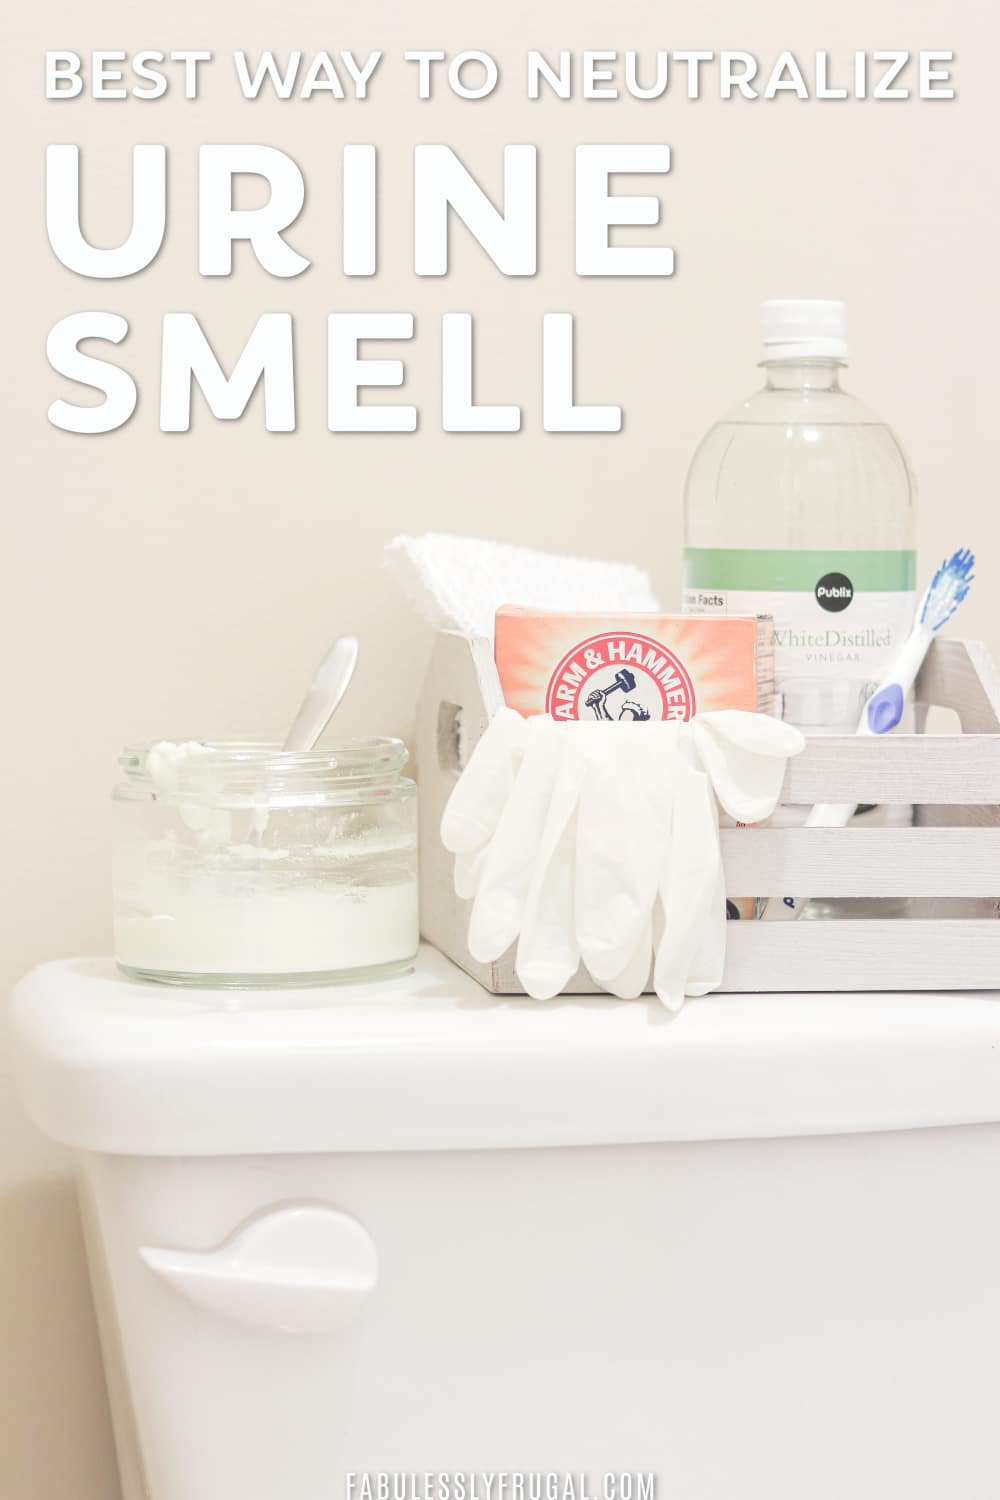 How To Get Rid Of The Bathroom Urine Smell